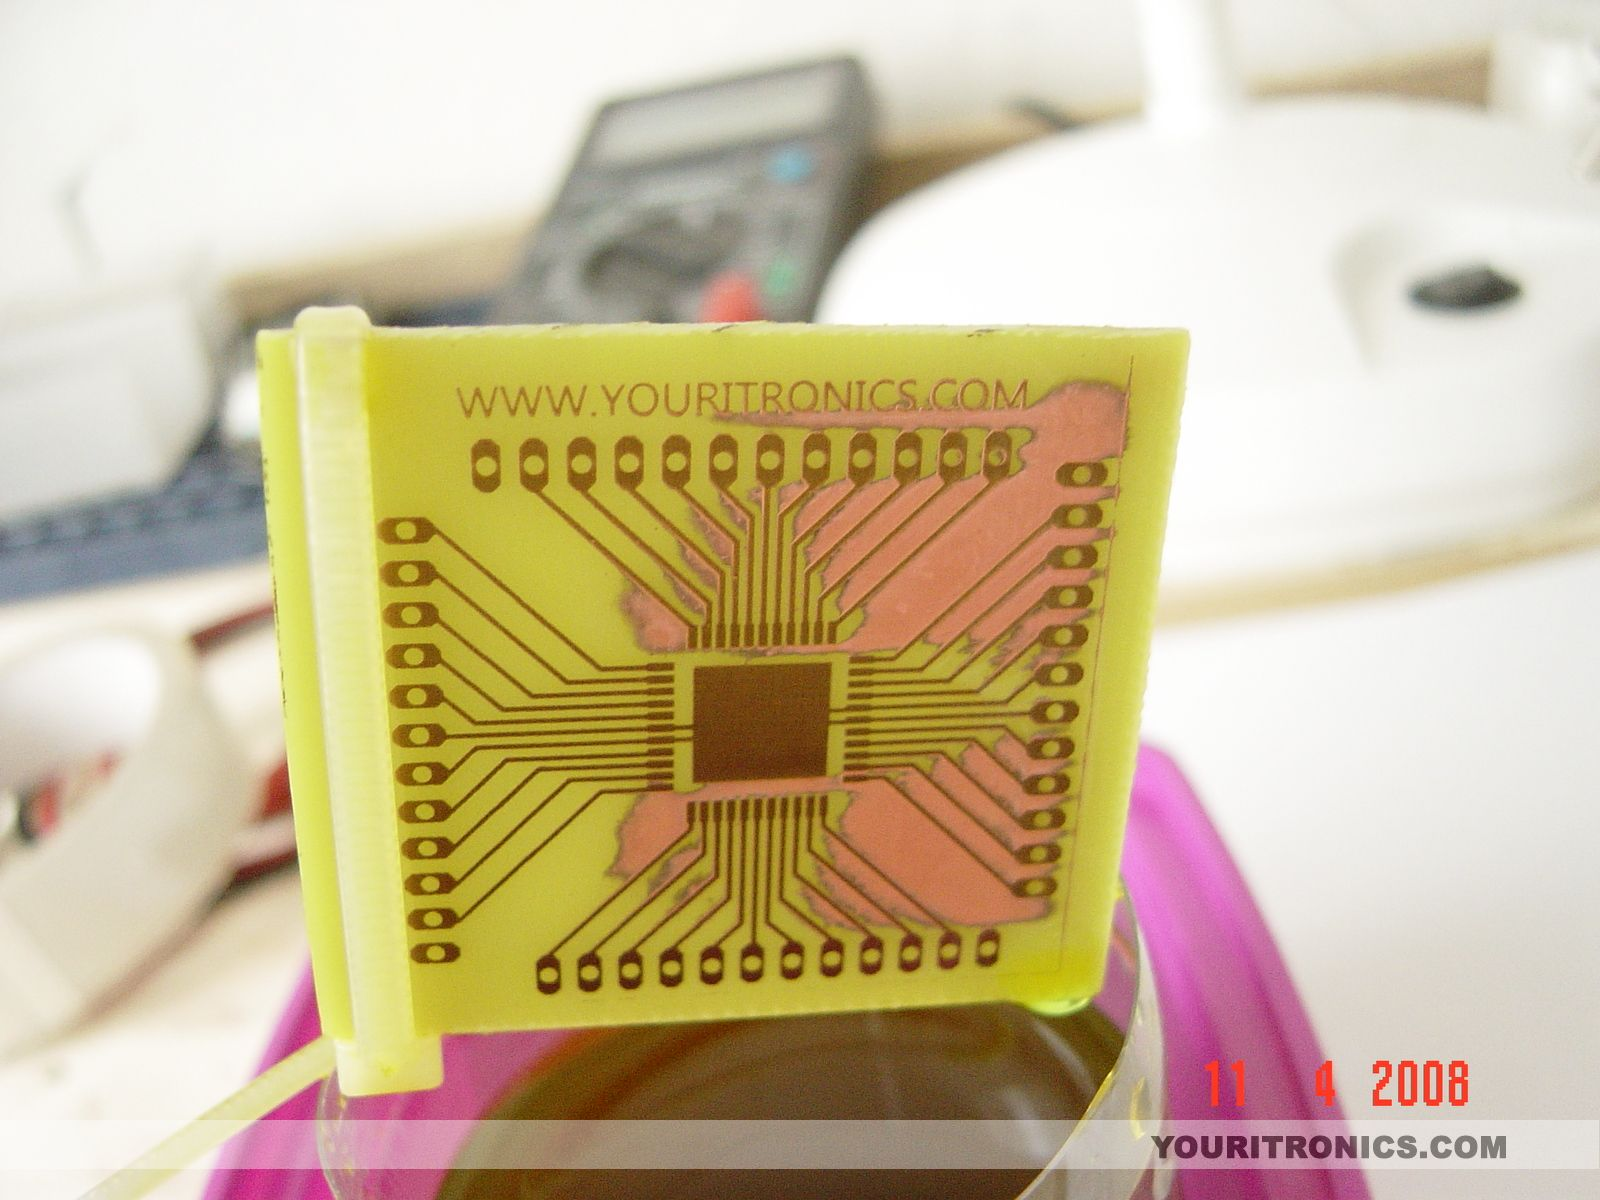 DIY Printed Circuit Board Using Photo Etching Method